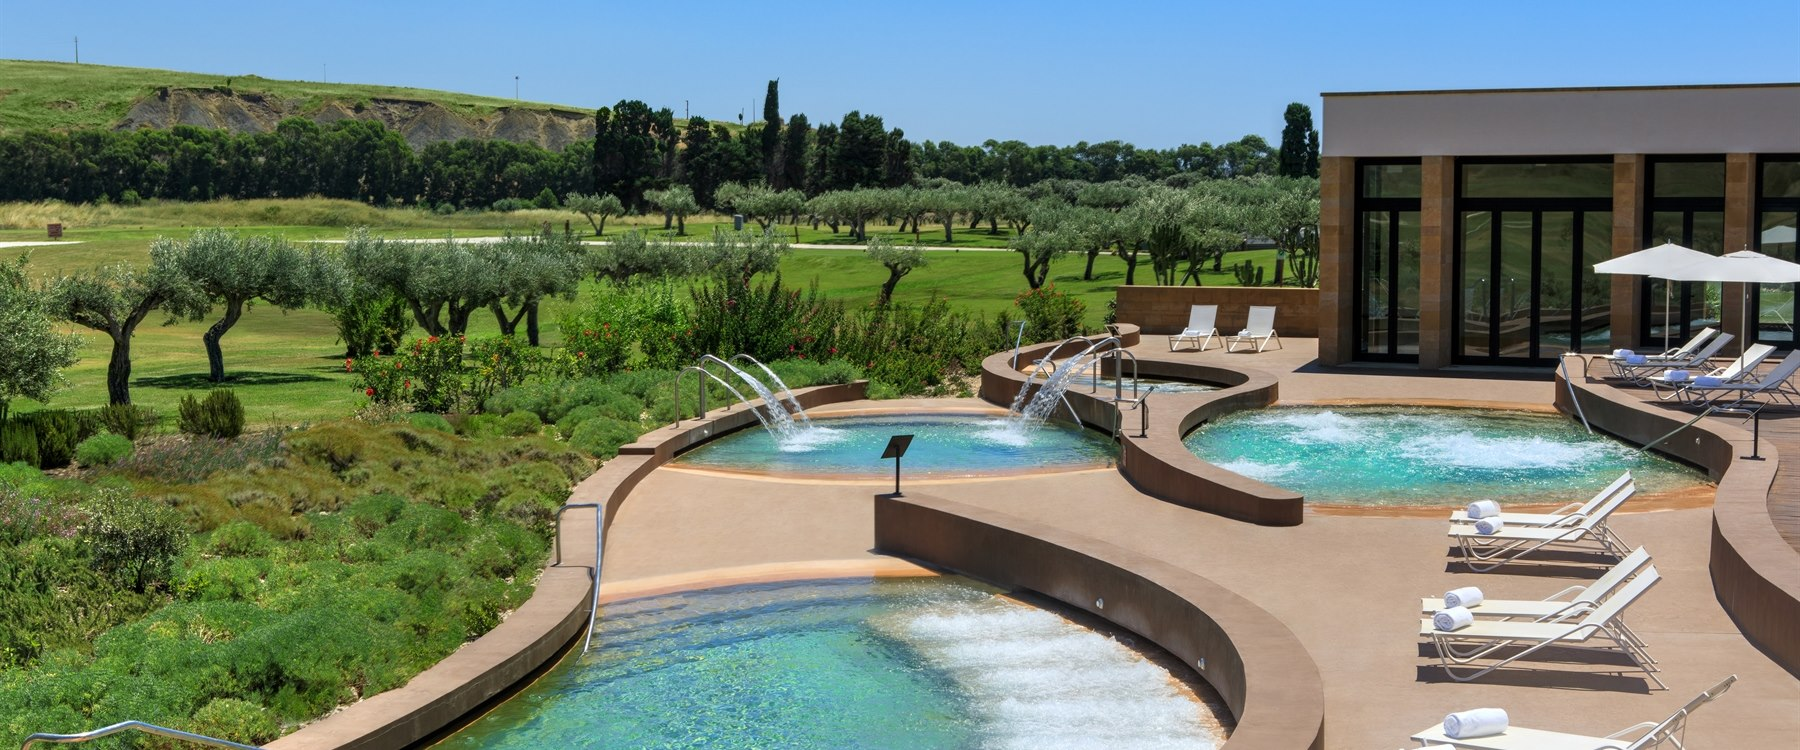 Spa thalassotherapy pool at Verdura Resort, Sicily